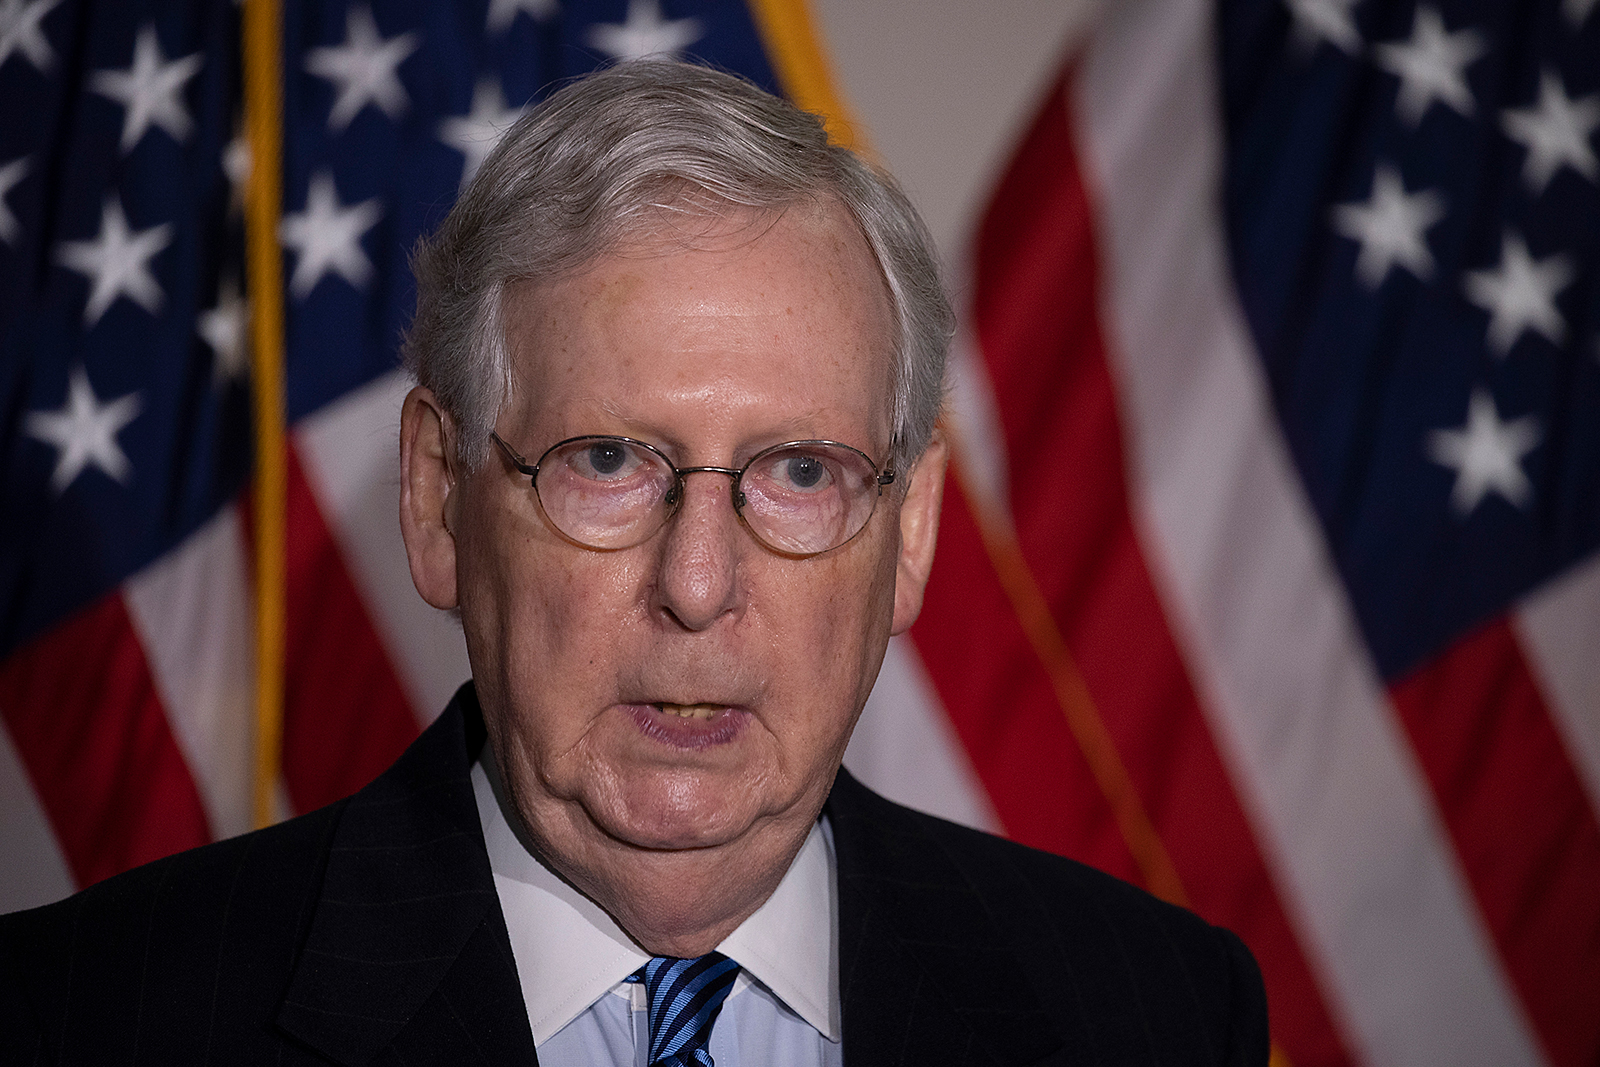 Senate Majority Leader Mitch McConnell speaks to the media after the weekly policy luncheons at the US Capitol in Washington, DC, on November 10.